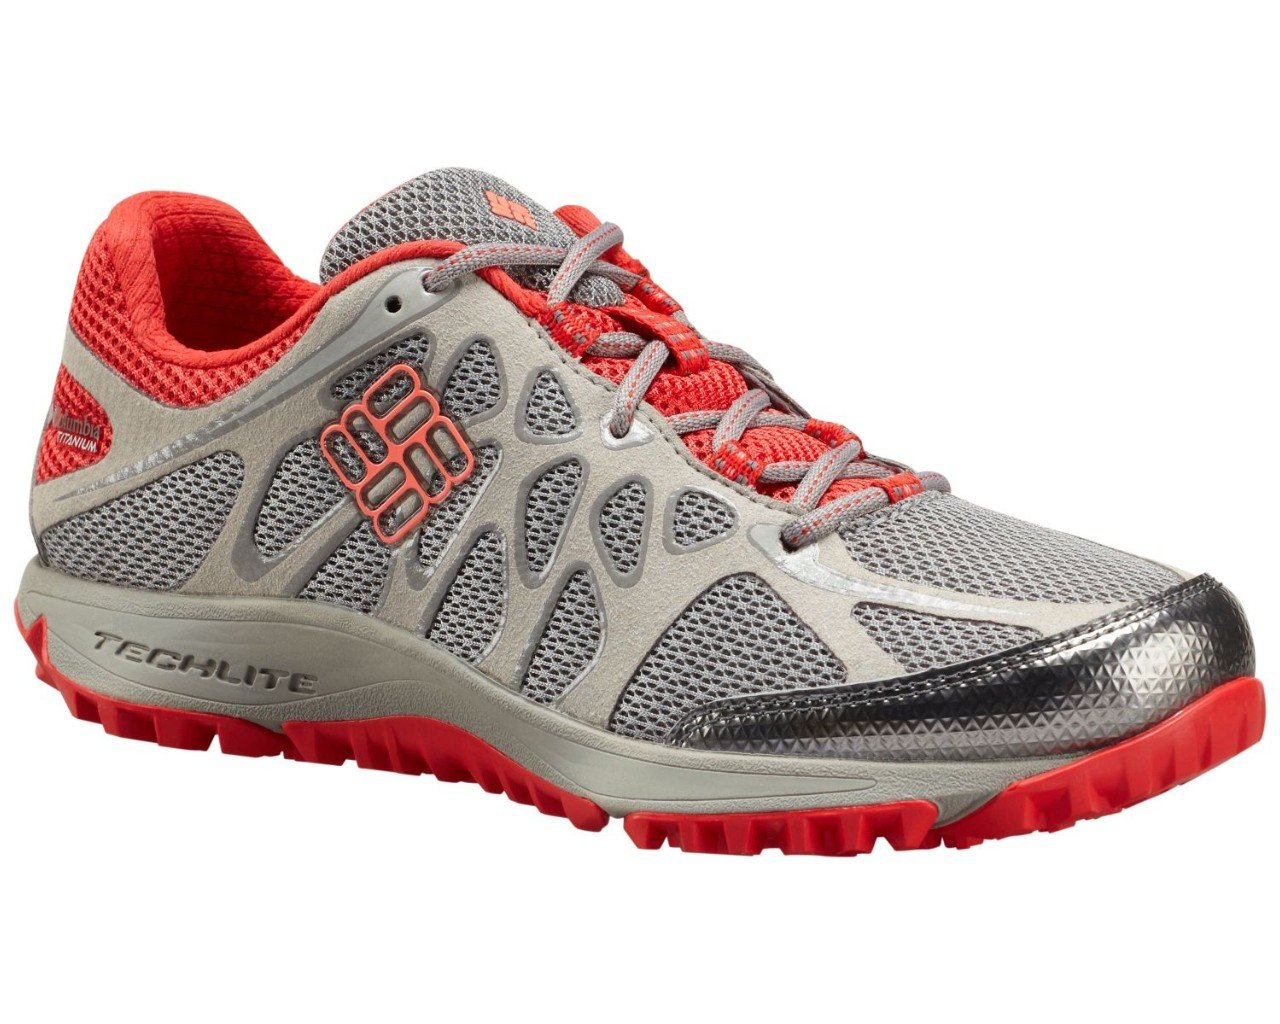 Columbia Women's Conspiracy Titanium Trail Outdoor Sneakers, Grey Mesh, 7.5 M